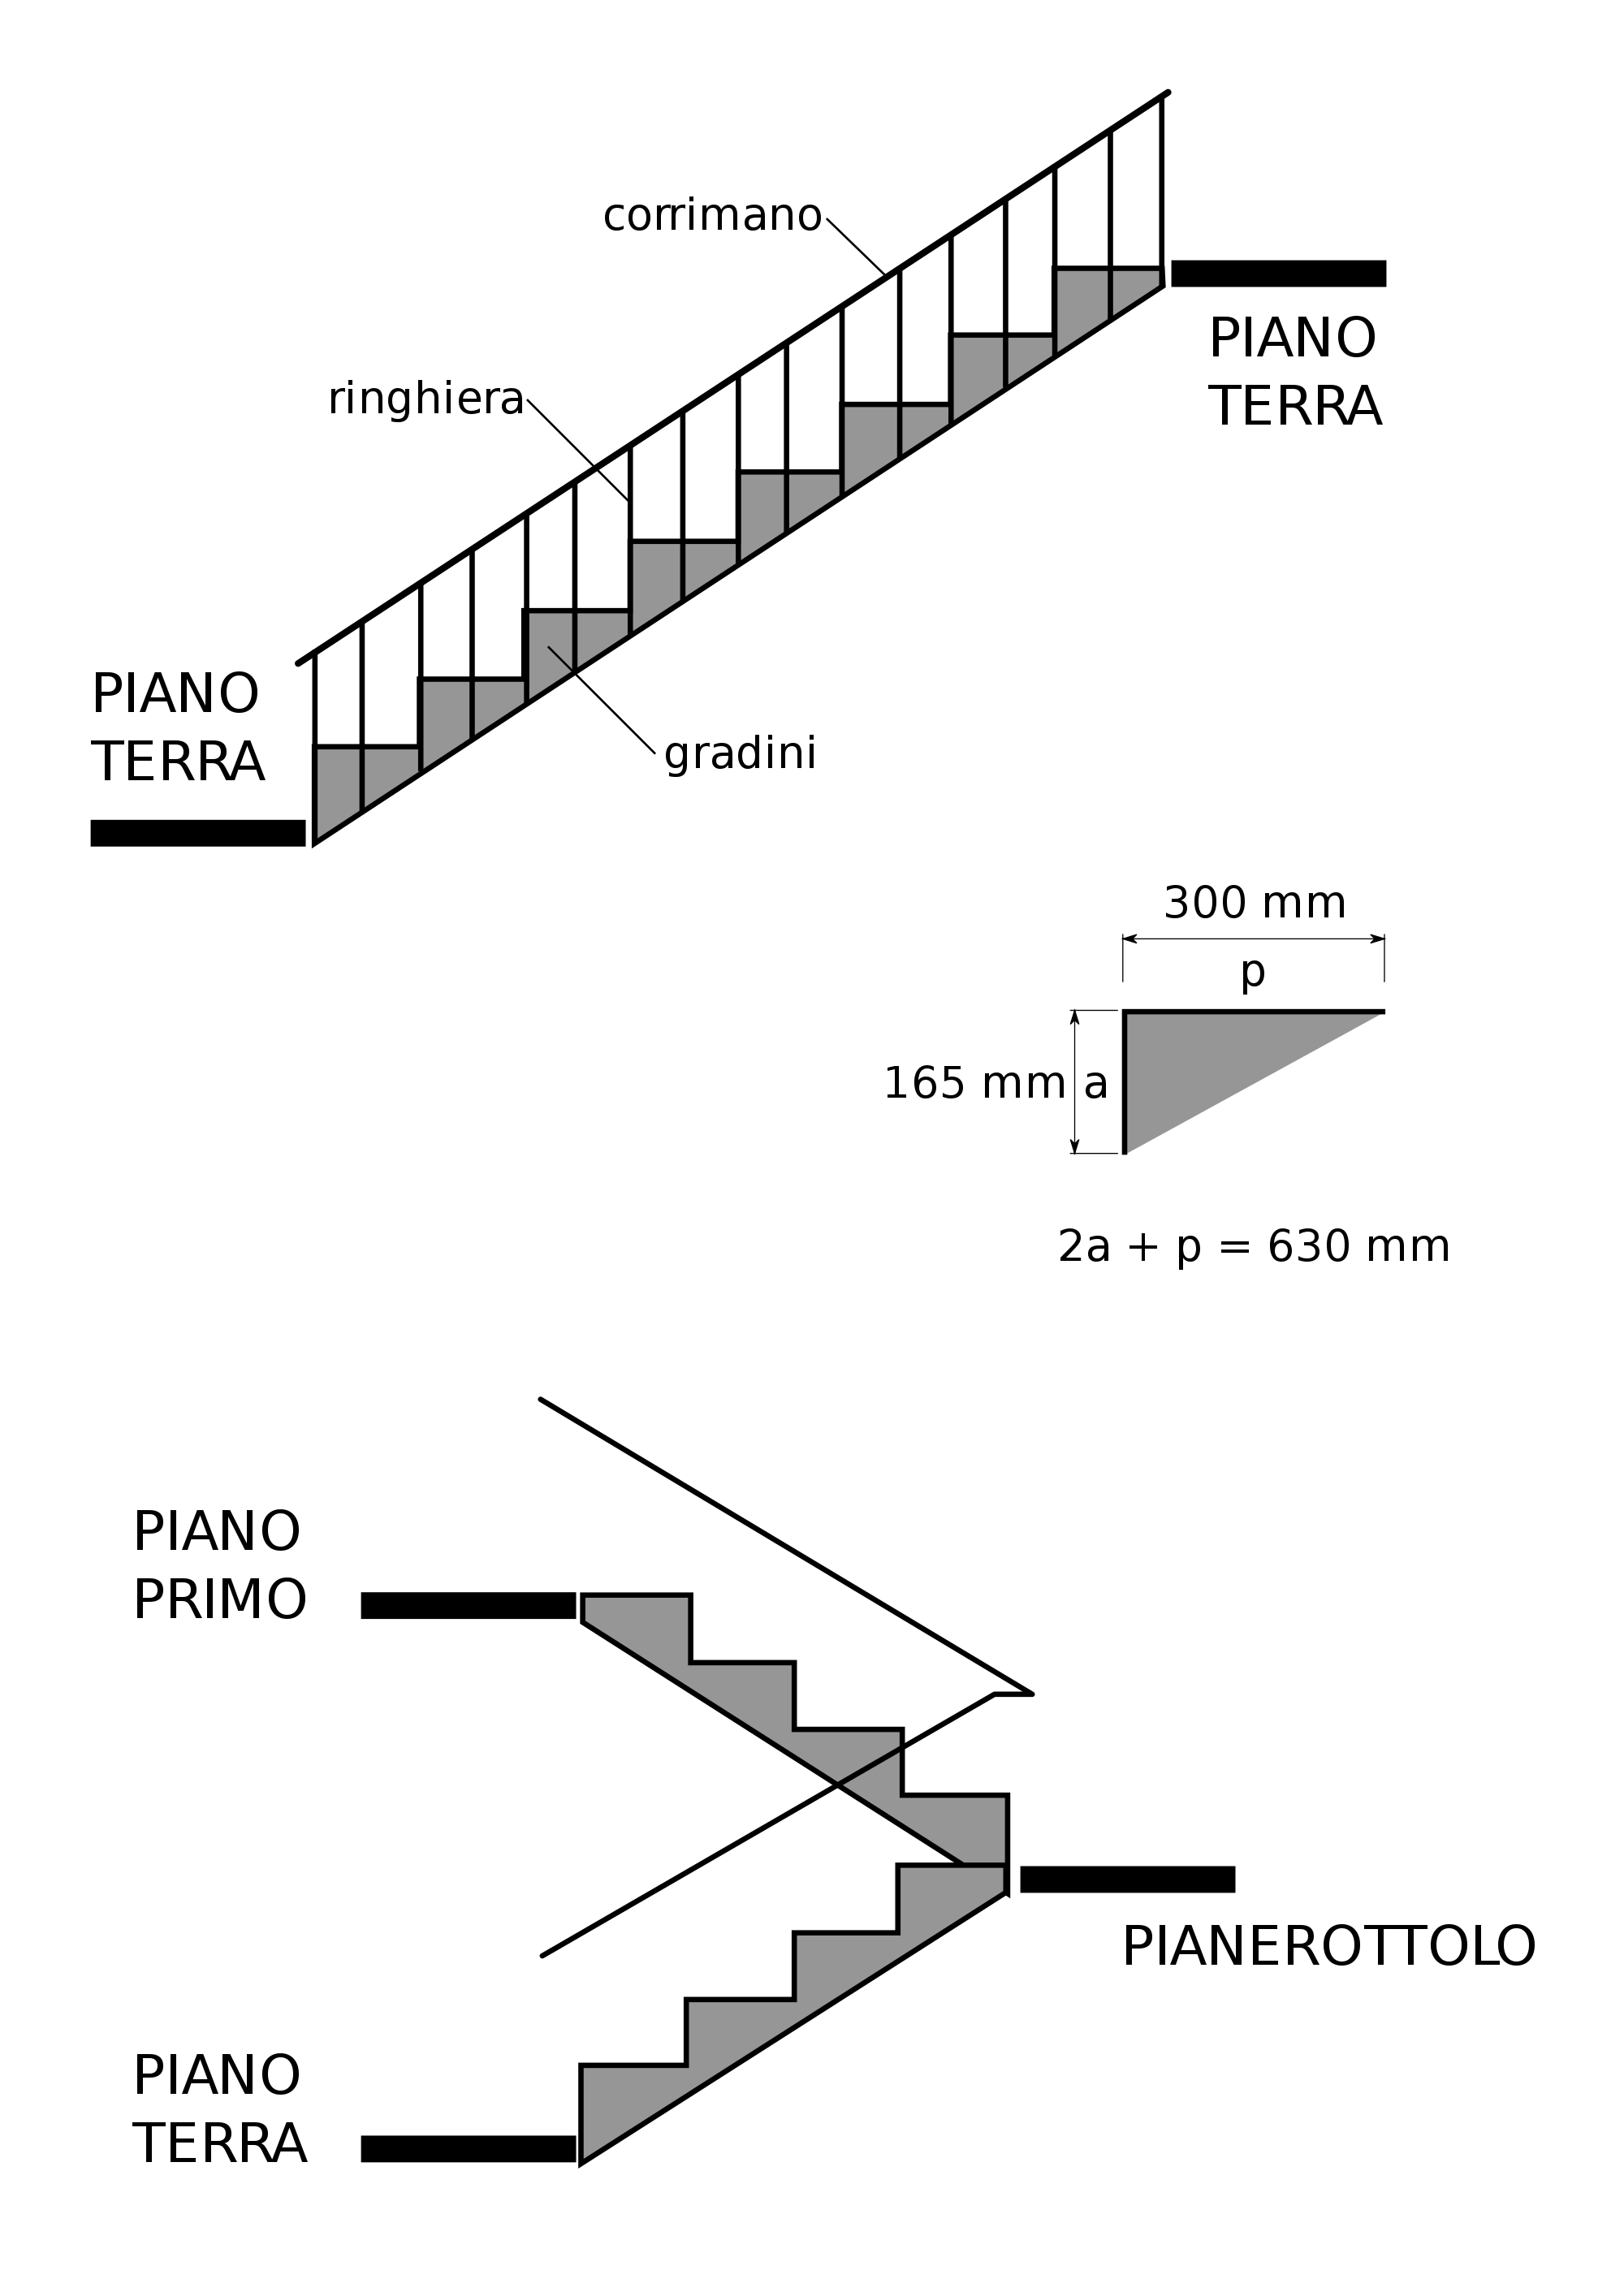 Stairs transparent italian style. File italy stair drawing